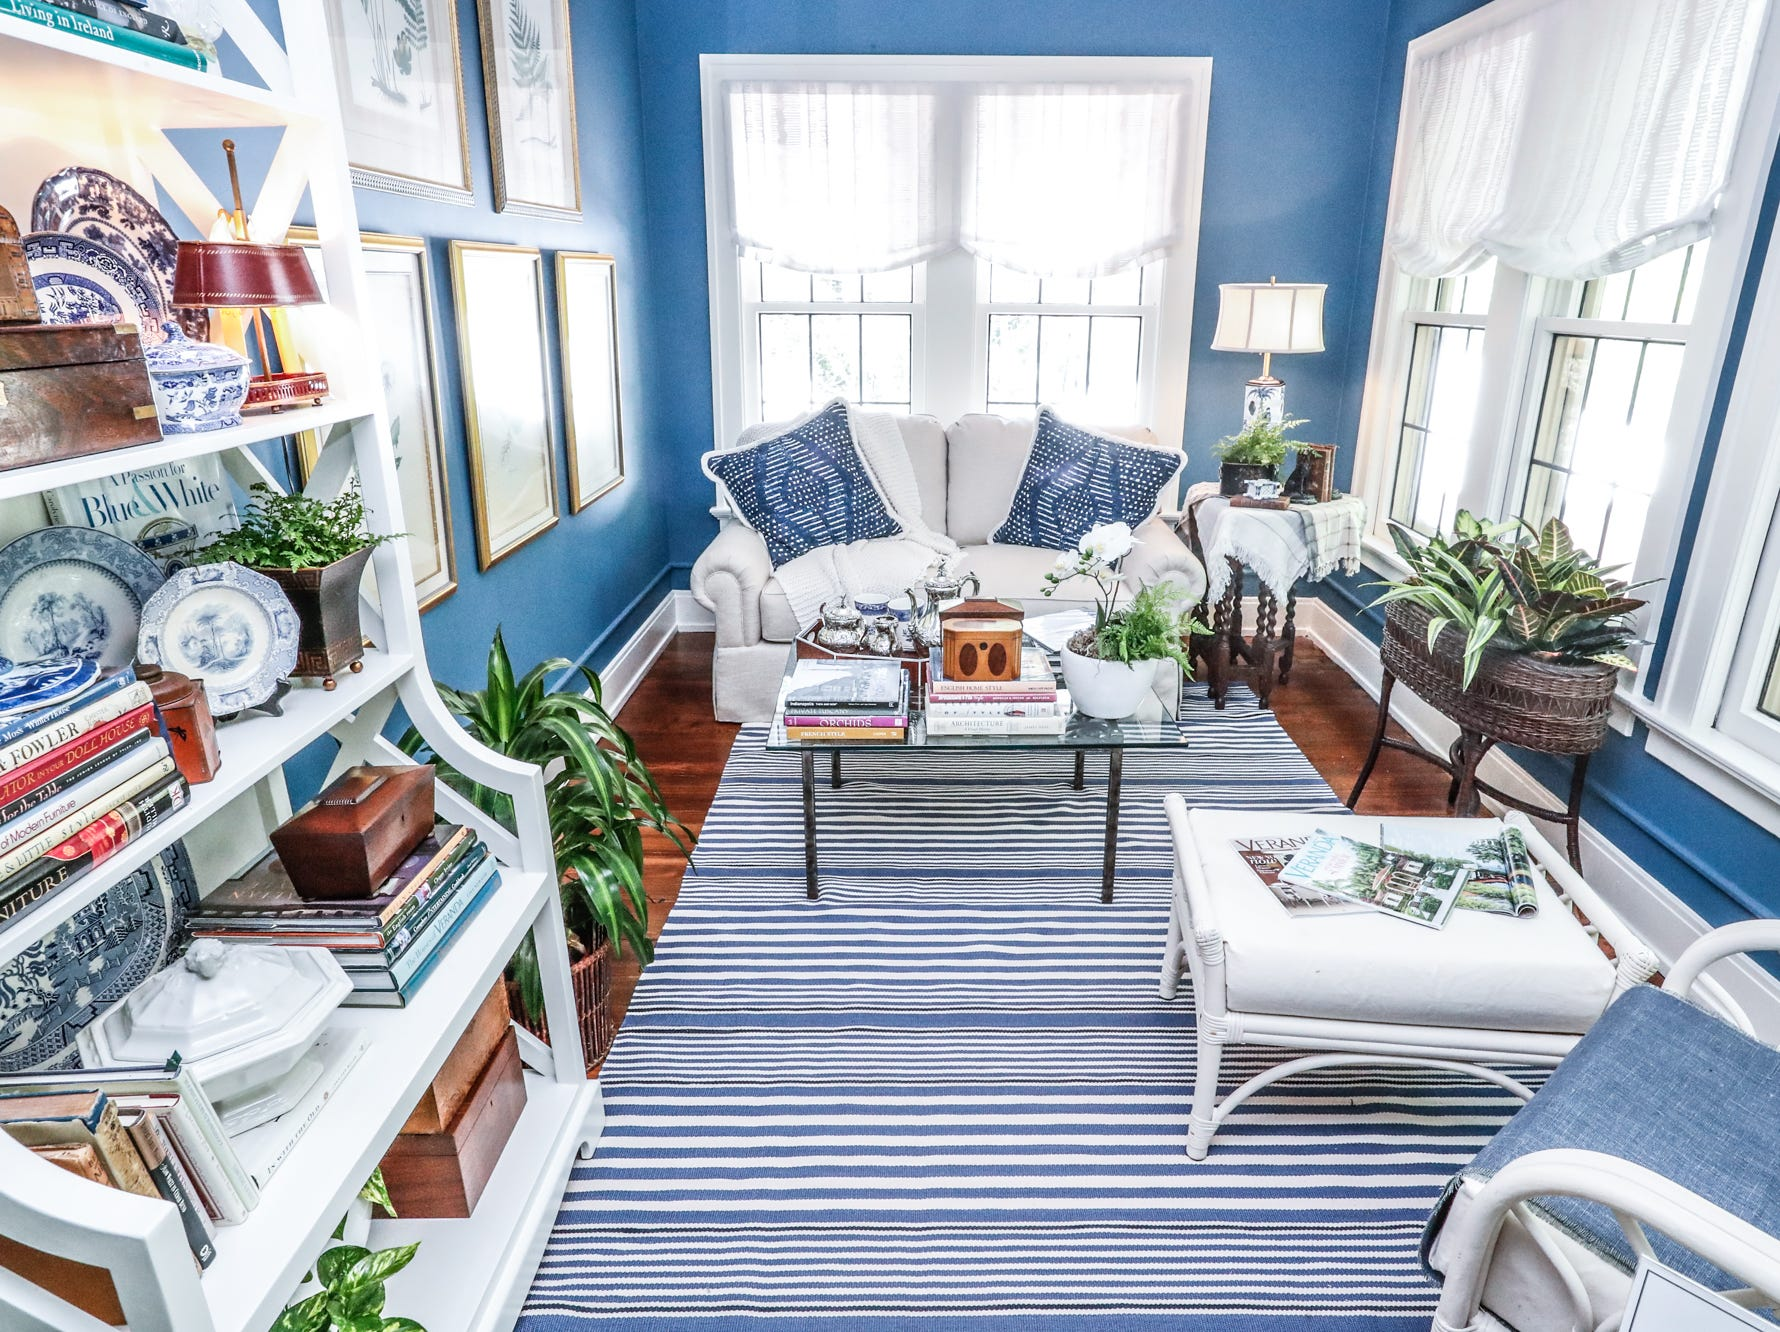 """The """"Morning Room"""", designed by Rosalind Brinn Pope Interior Design, inside The 58th annual St. Margaret's Hospital Guild Decorators' Show House and Gardens, located at 4160 Washington Blvd., Indianapolis, on Wednesday, May 8, 2019."""